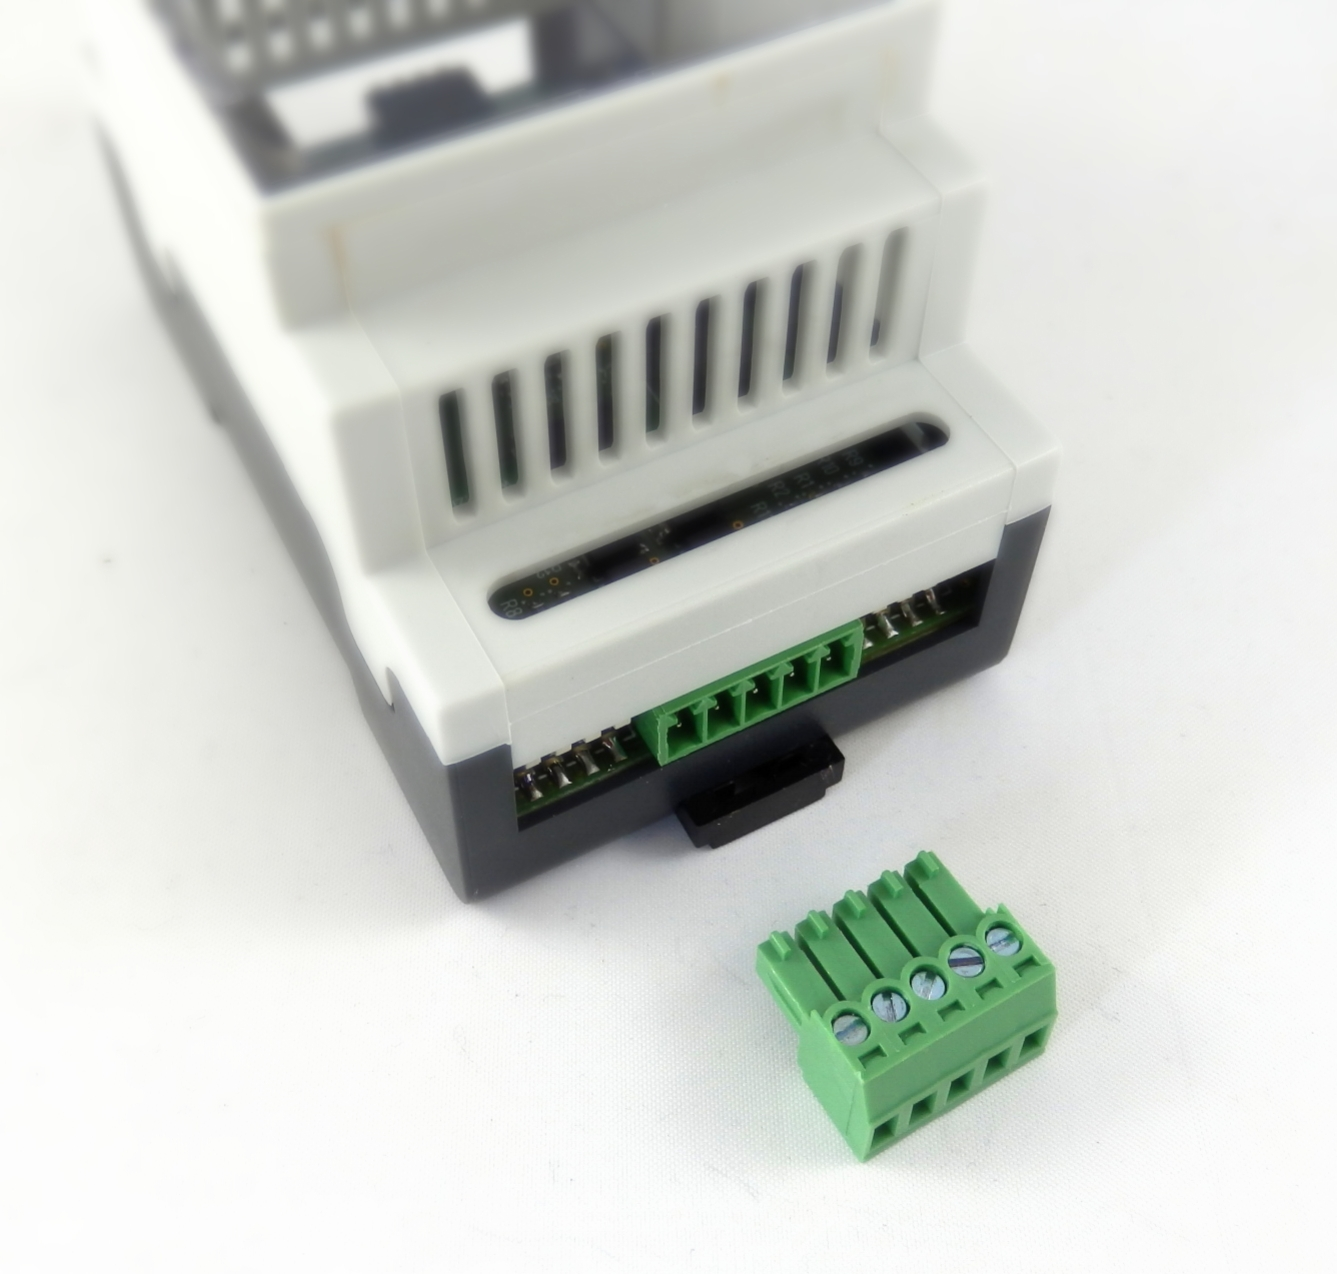 SimpliBox 485  - assembled device